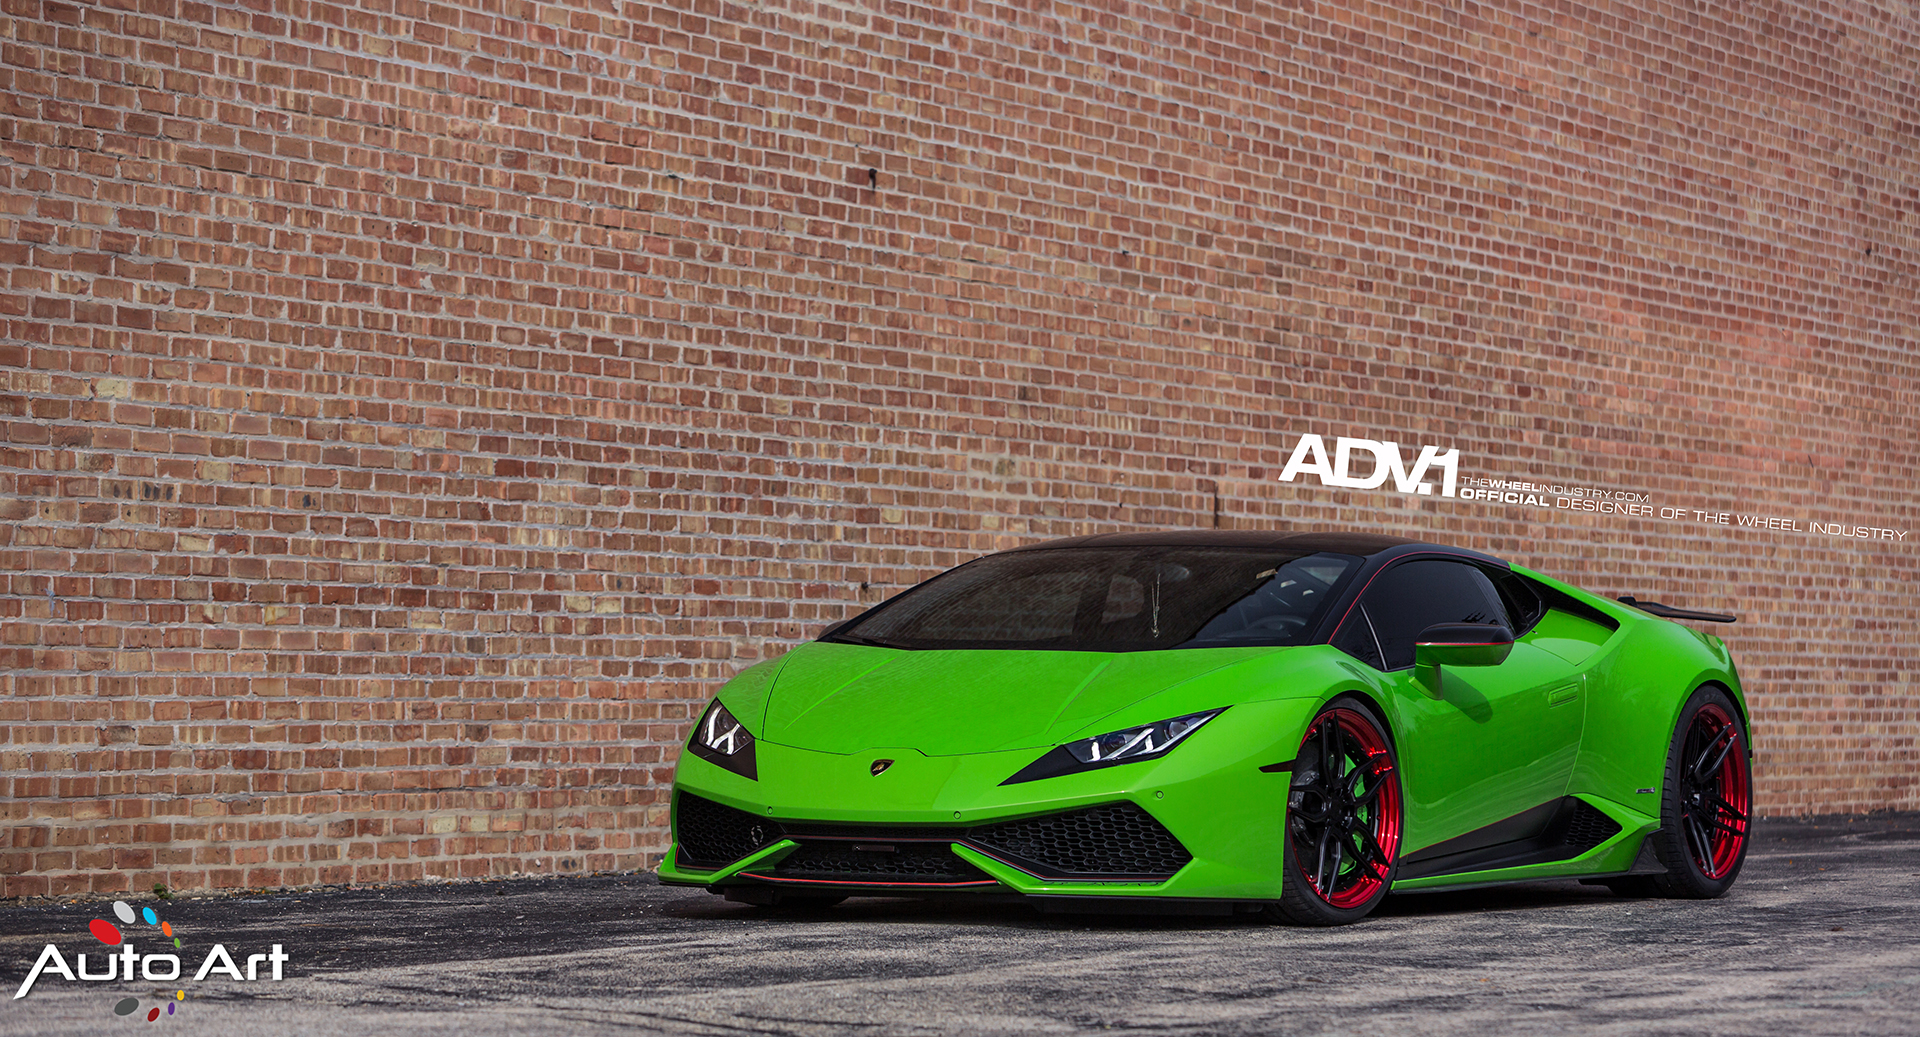 verde mantis green lamborghini huracan lp610 4 black wheels red lip adv1 forged wheels vorsteiner novitec e